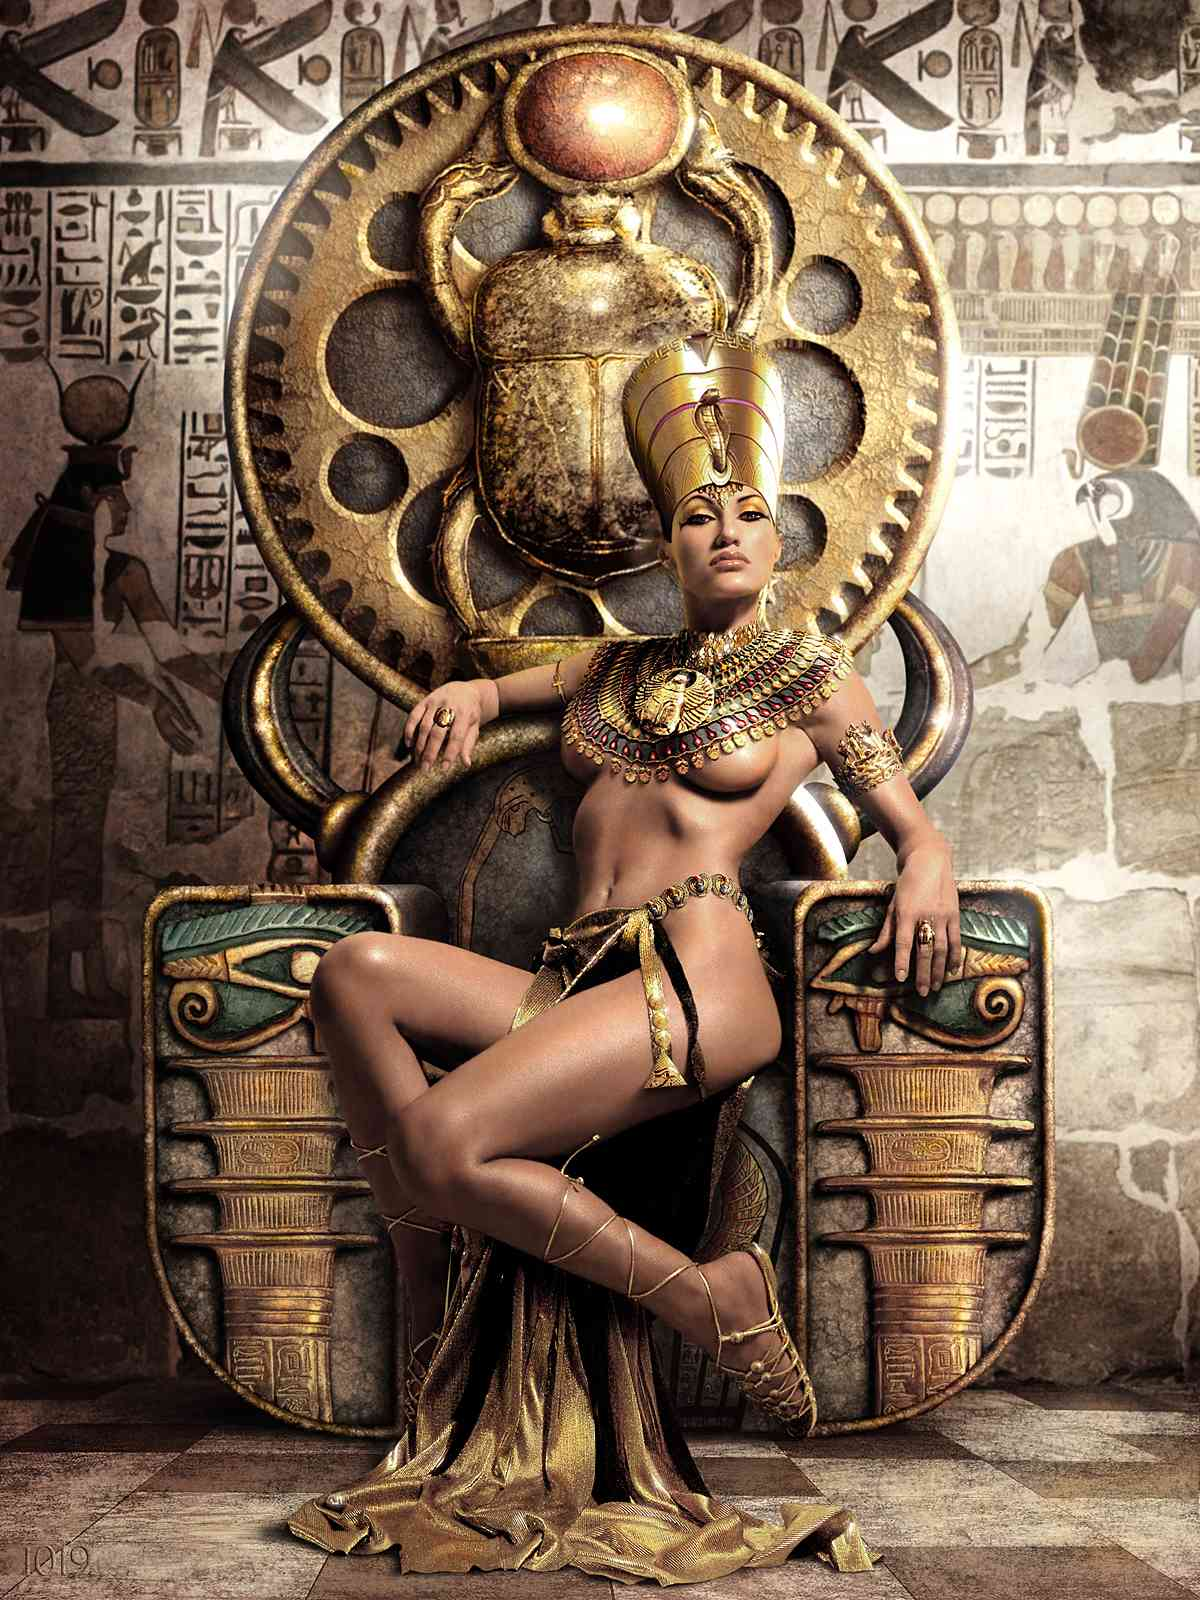 EGYPTIAN QUEEN OF THE 1019 PROPHECY